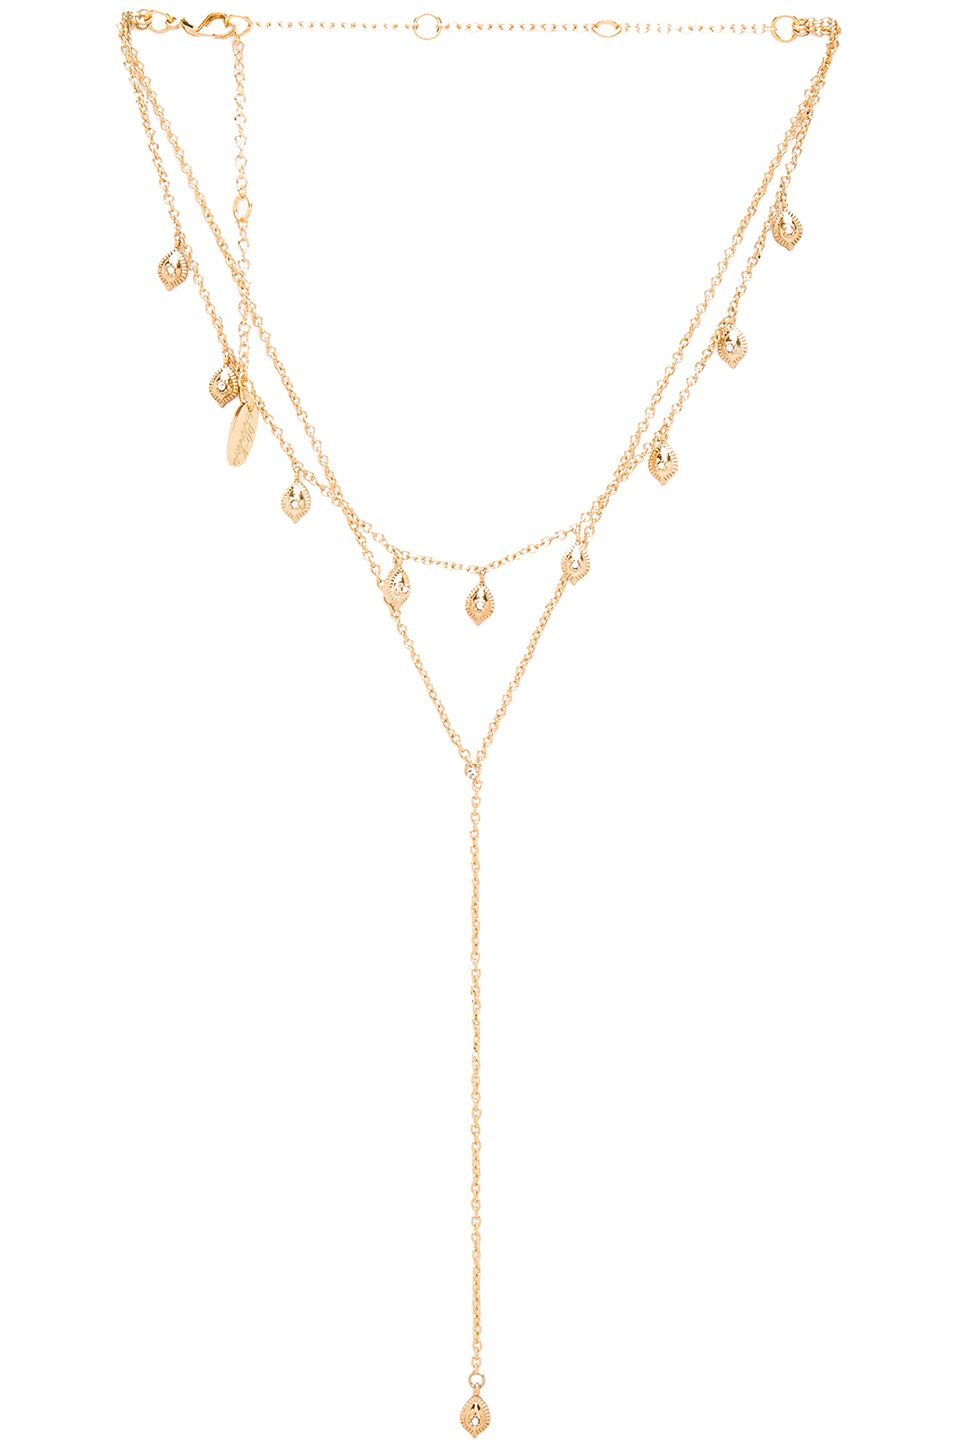 multi row missguided heart jewellery necklaces gold layered accessories double layer necklace chain